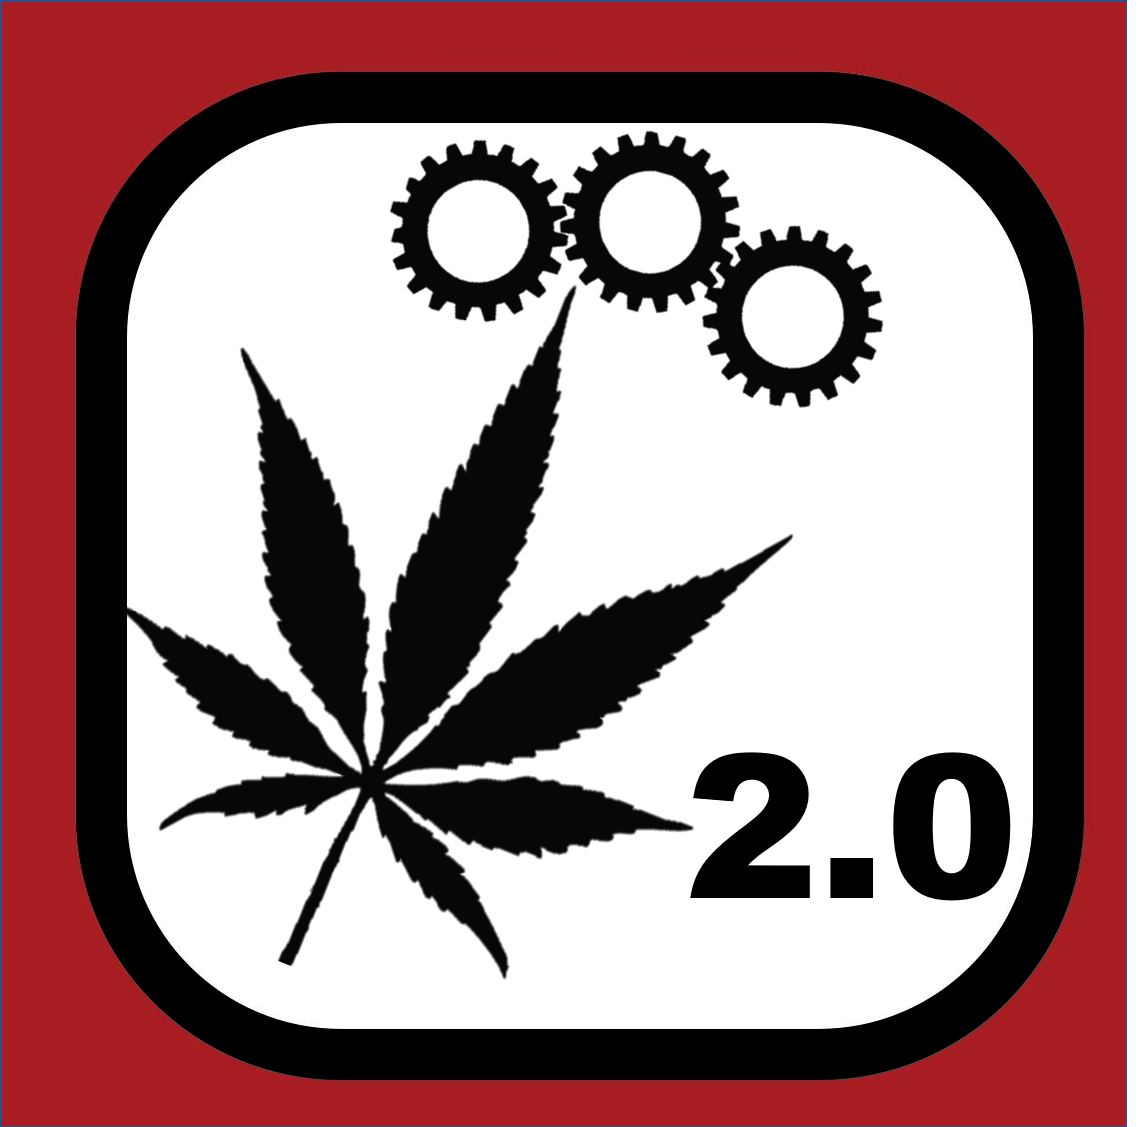 Production et transformation du cannabis 2.0